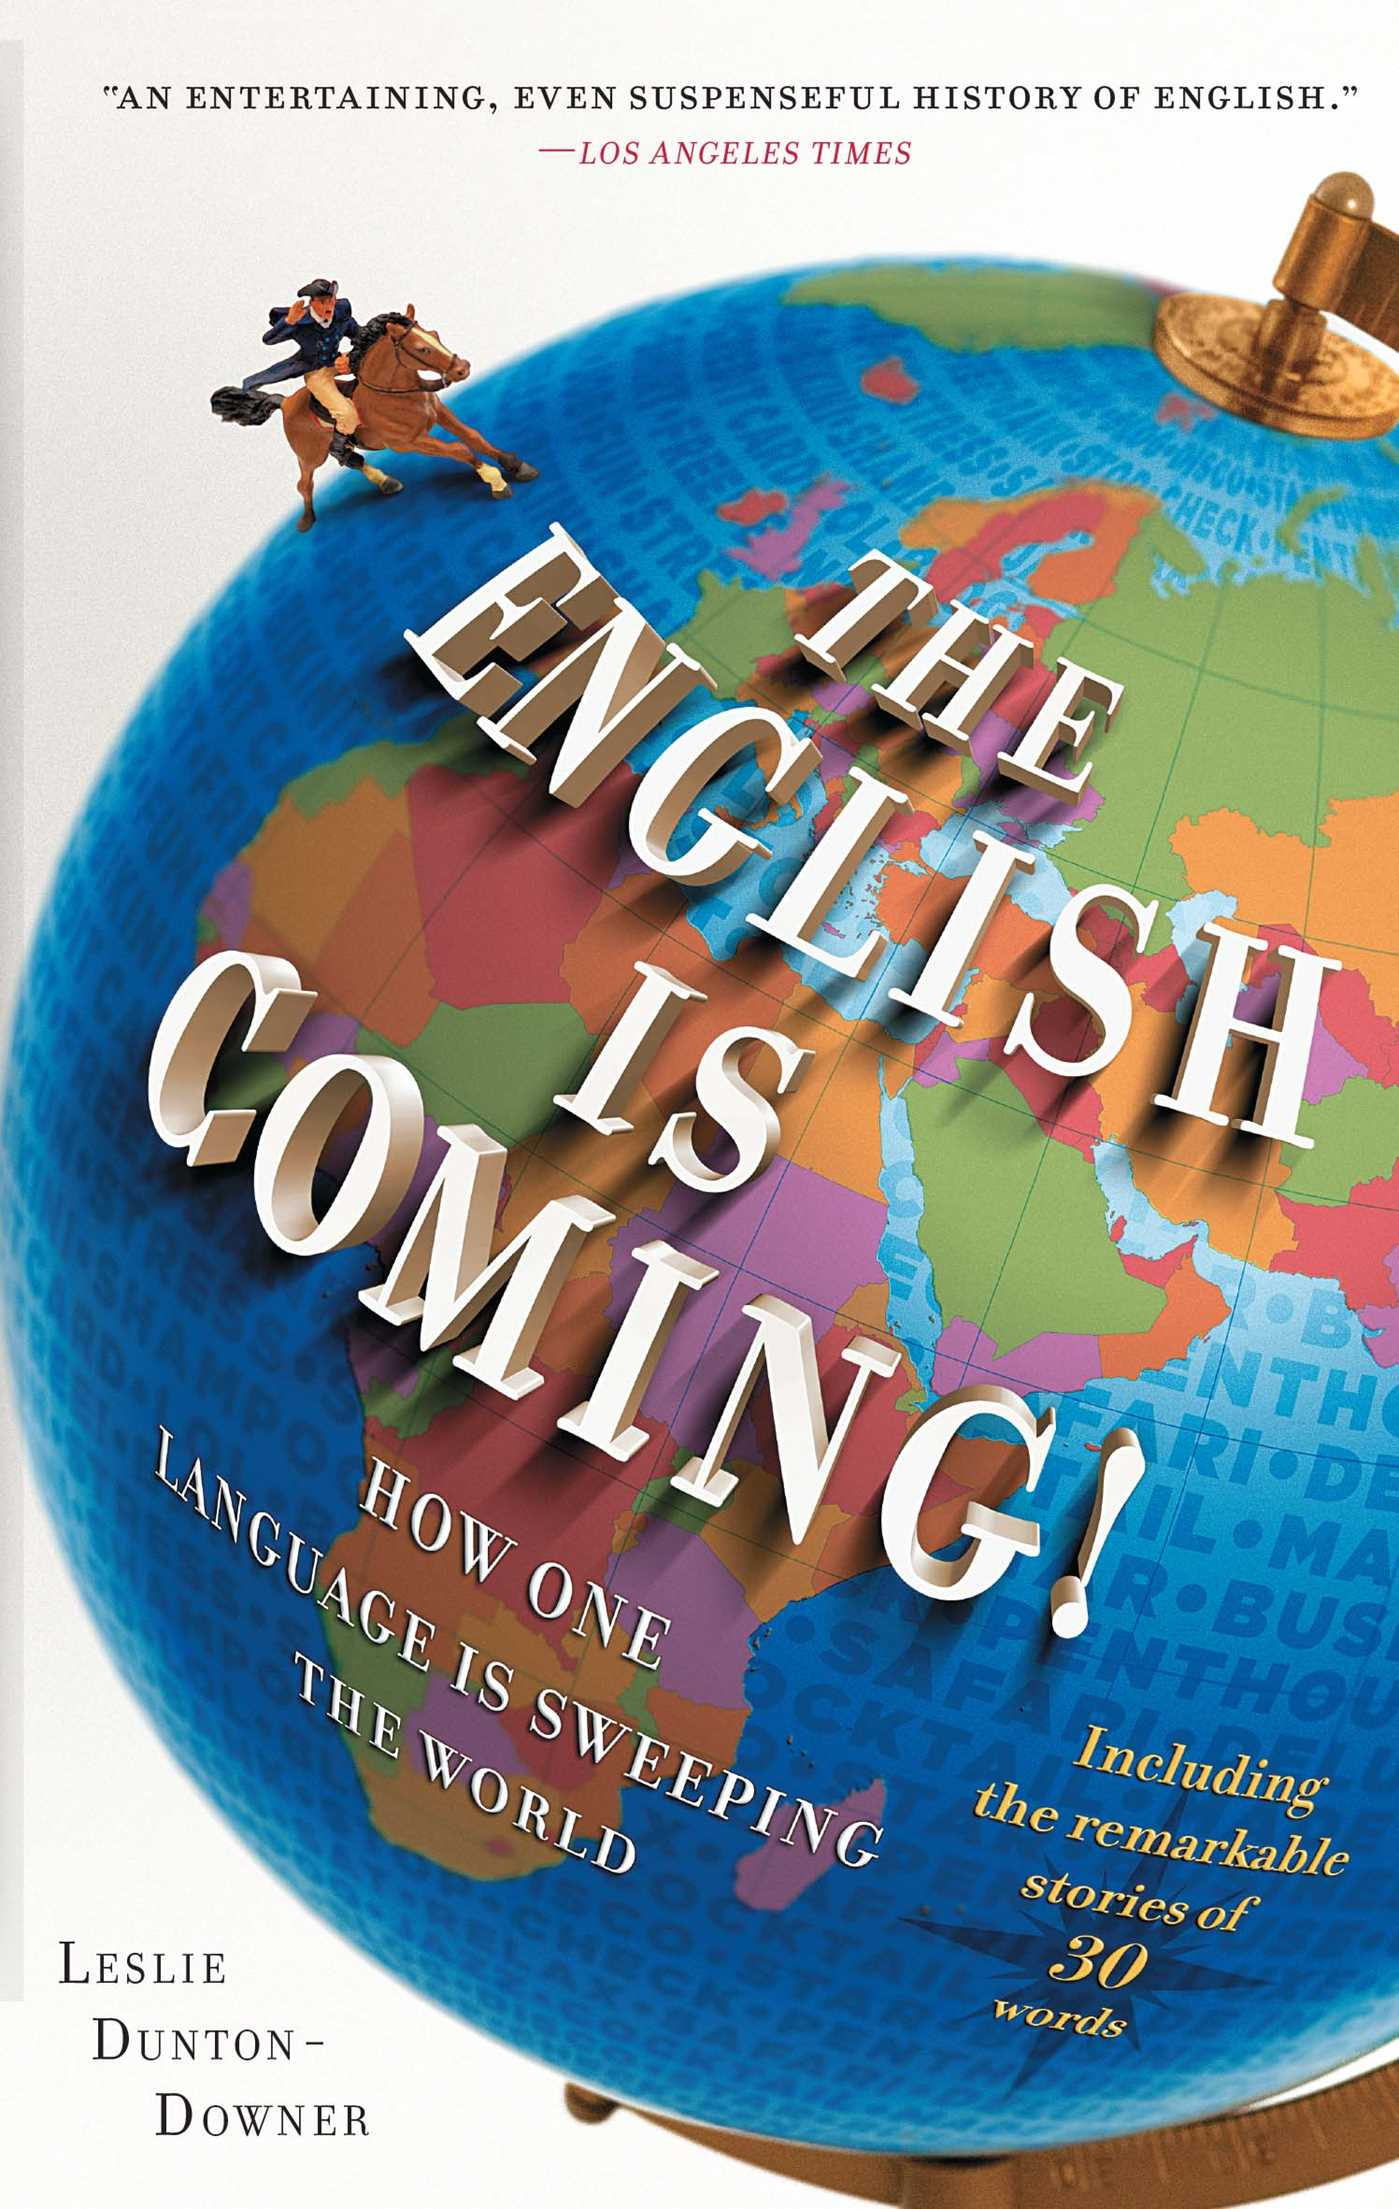 Book Cover Design Of English : Leslie dunton downer official publisher page simon